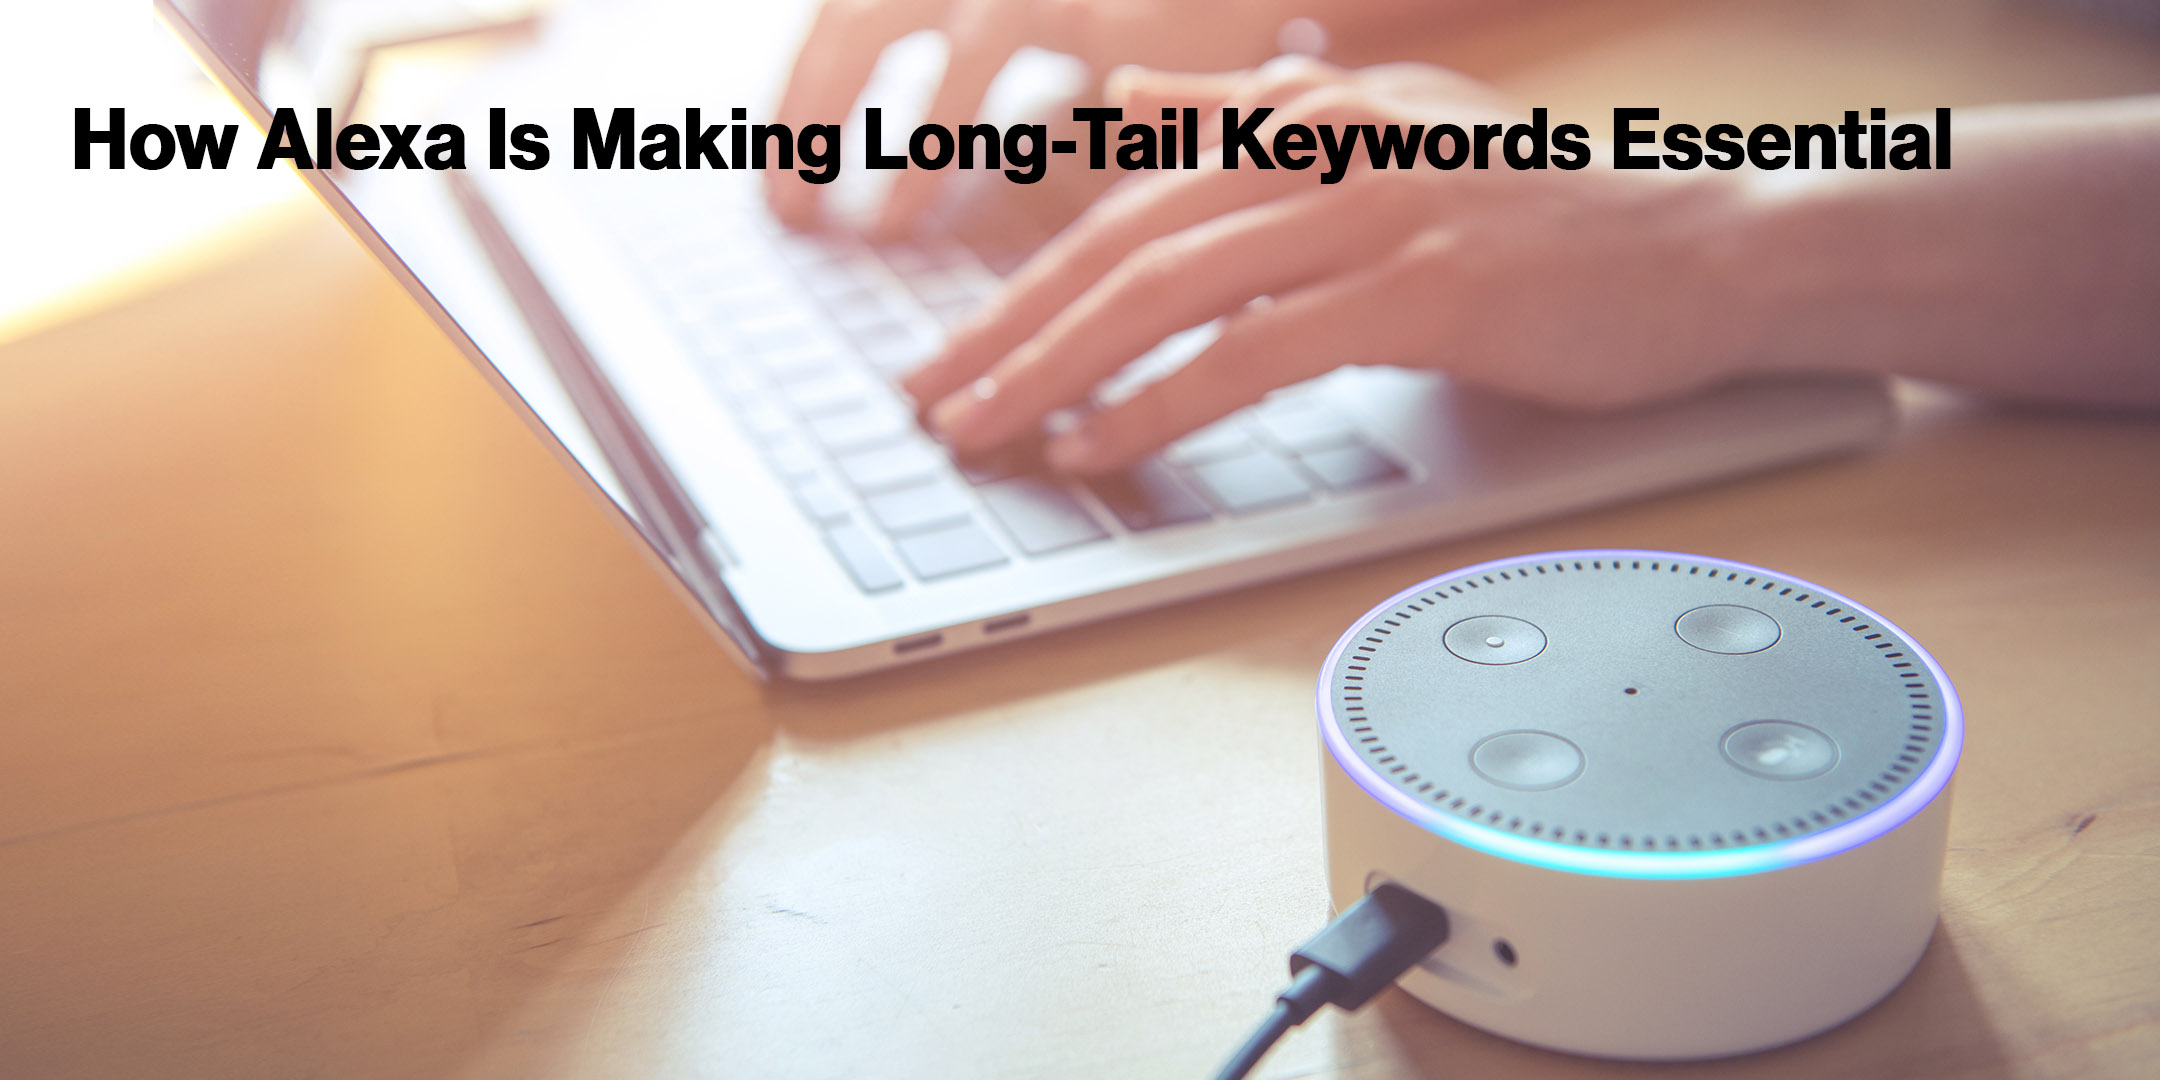 Long tail keywords for alexa